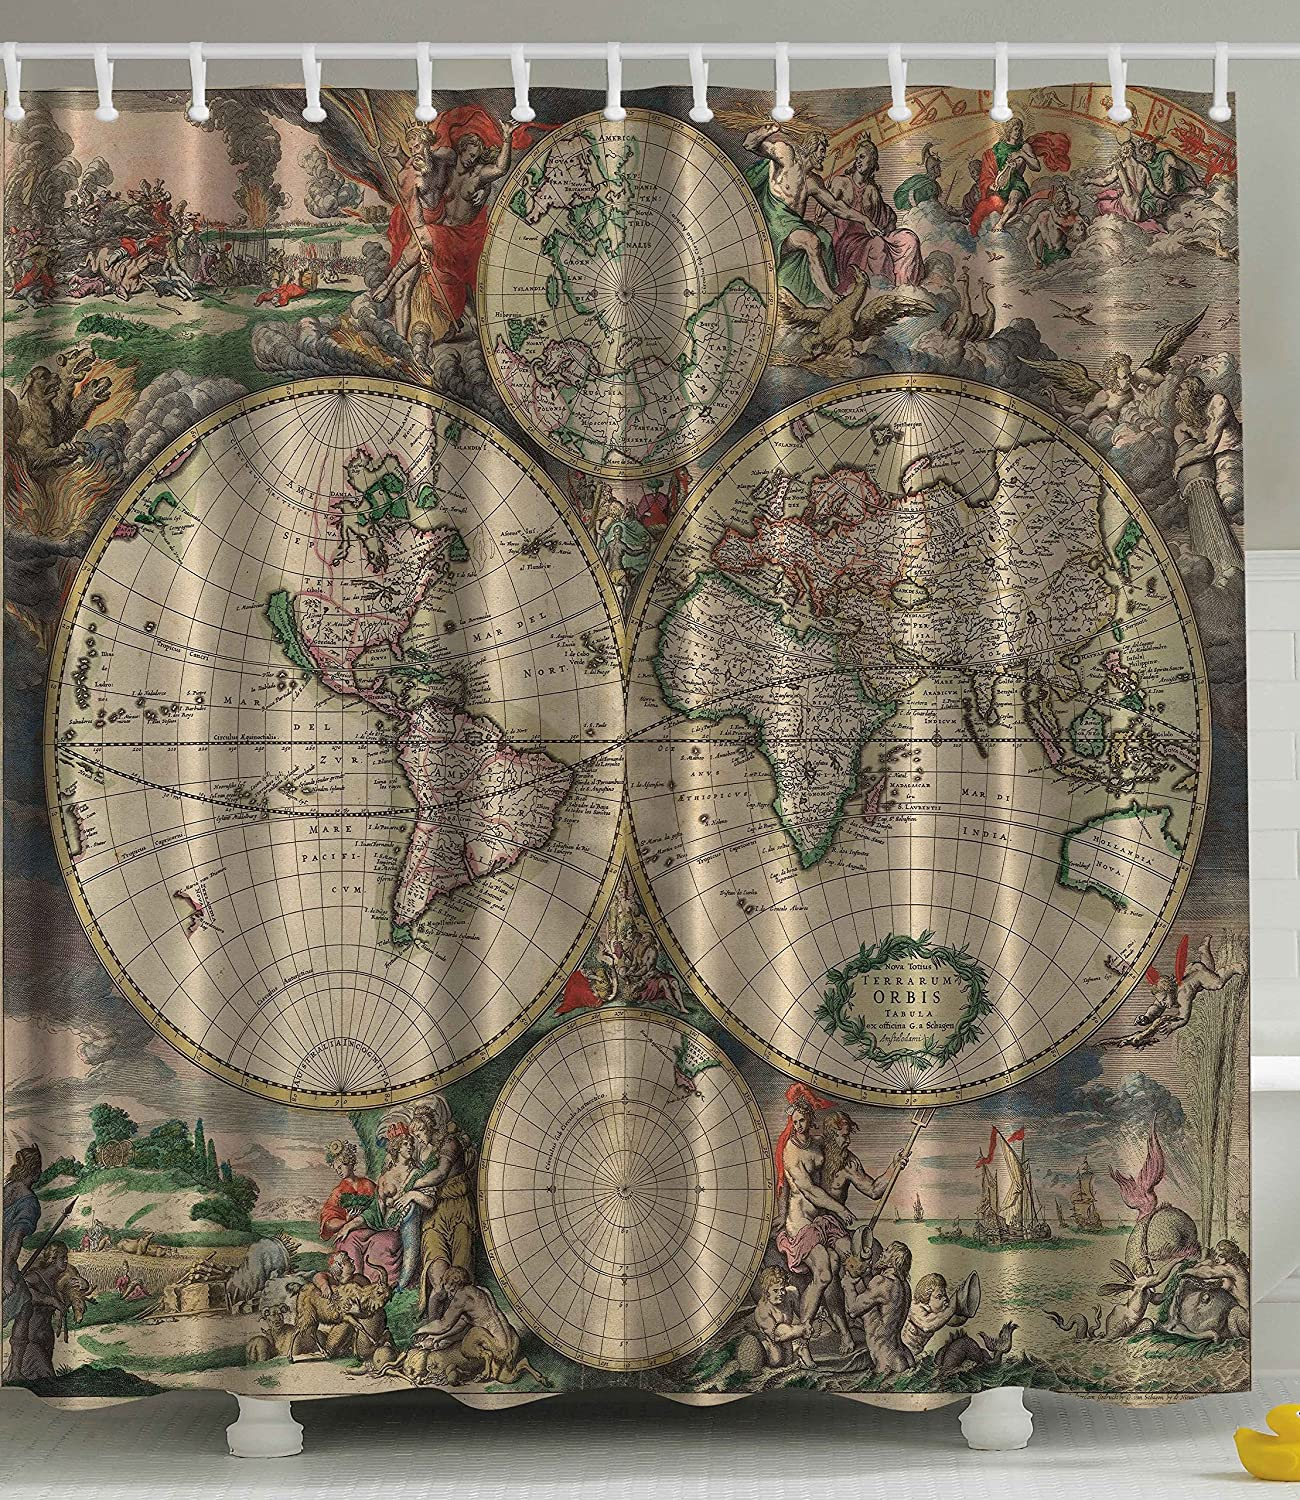 Treasure map shower curtain - Amazon Com Shower Curtain Antiques Old World Map Globe Art Lounge Decor Antique Traditional Ancient Antiqued Look Treasure Ocean Vintage Educational Print